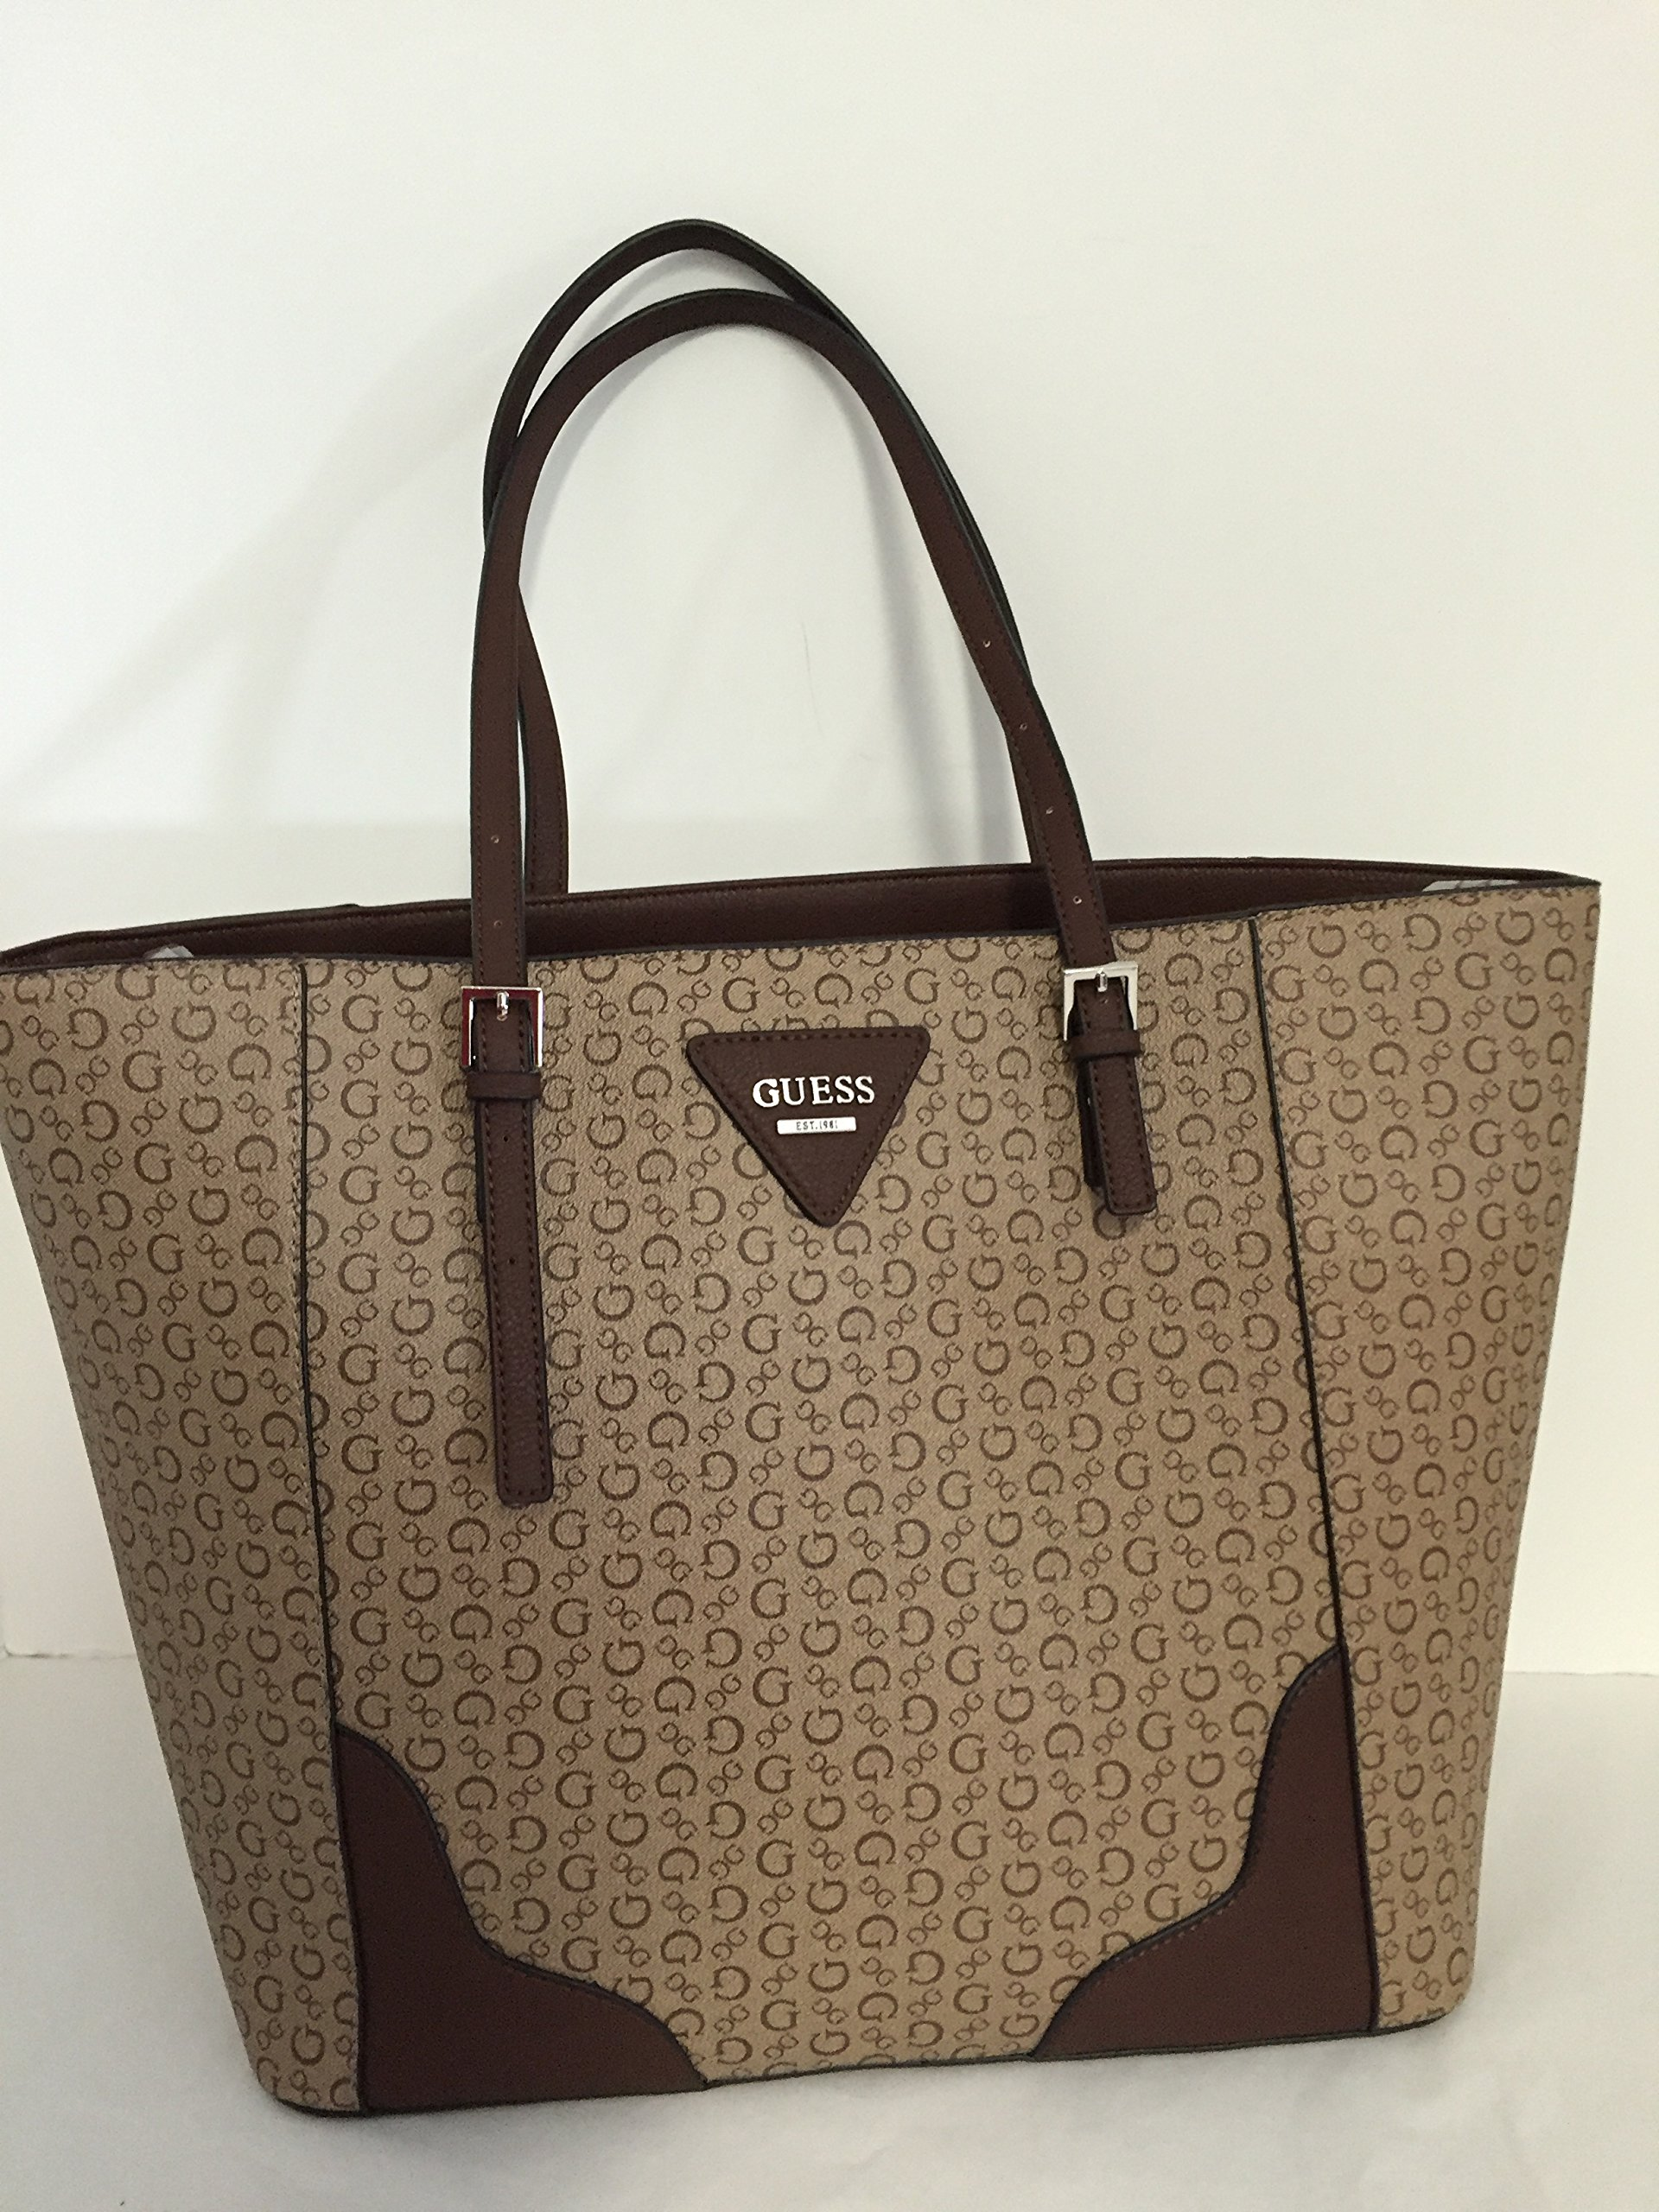 Guess saffiano leather Darcie Logo Tote Shoulder Bag